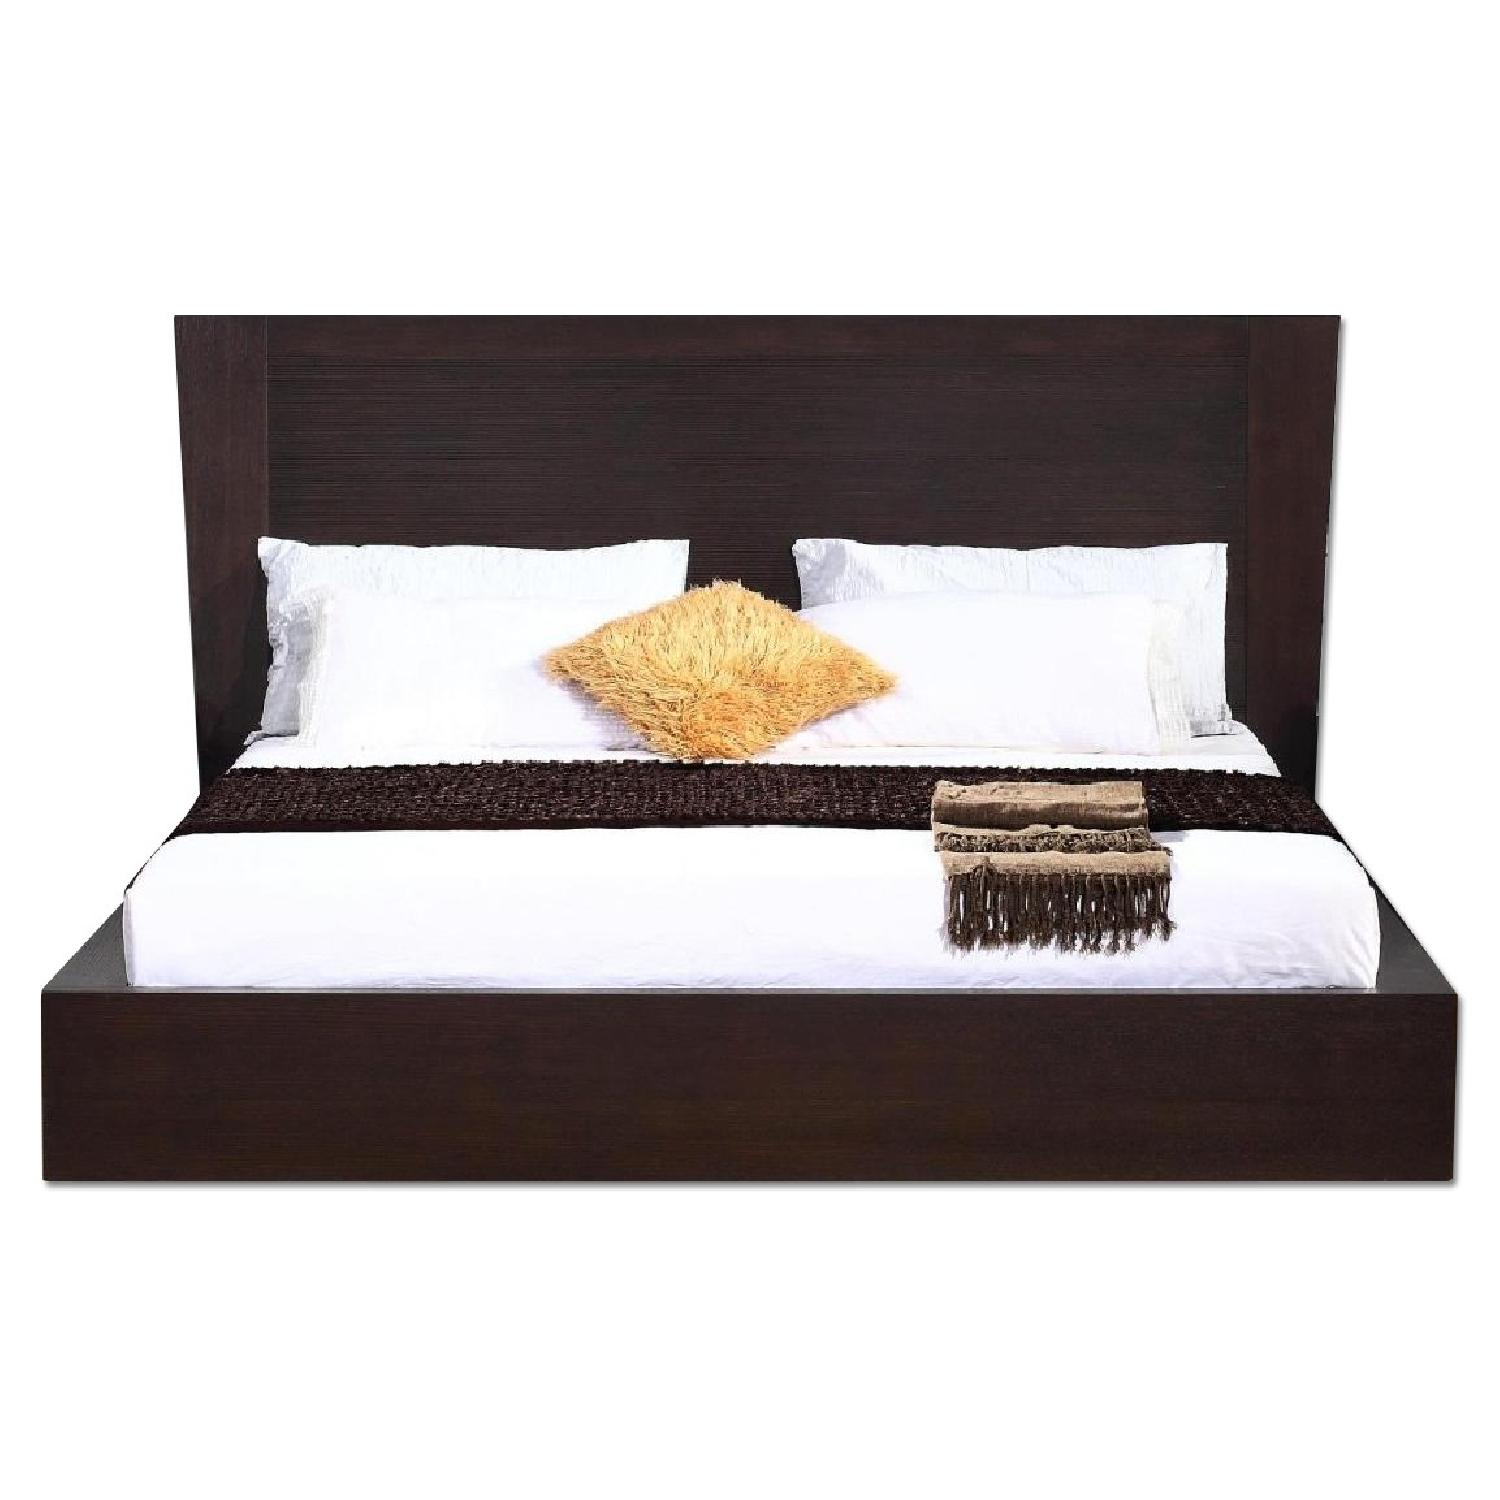 Queen Size Modern Platform Bed in Wenge w/ Lined Etched Headboard